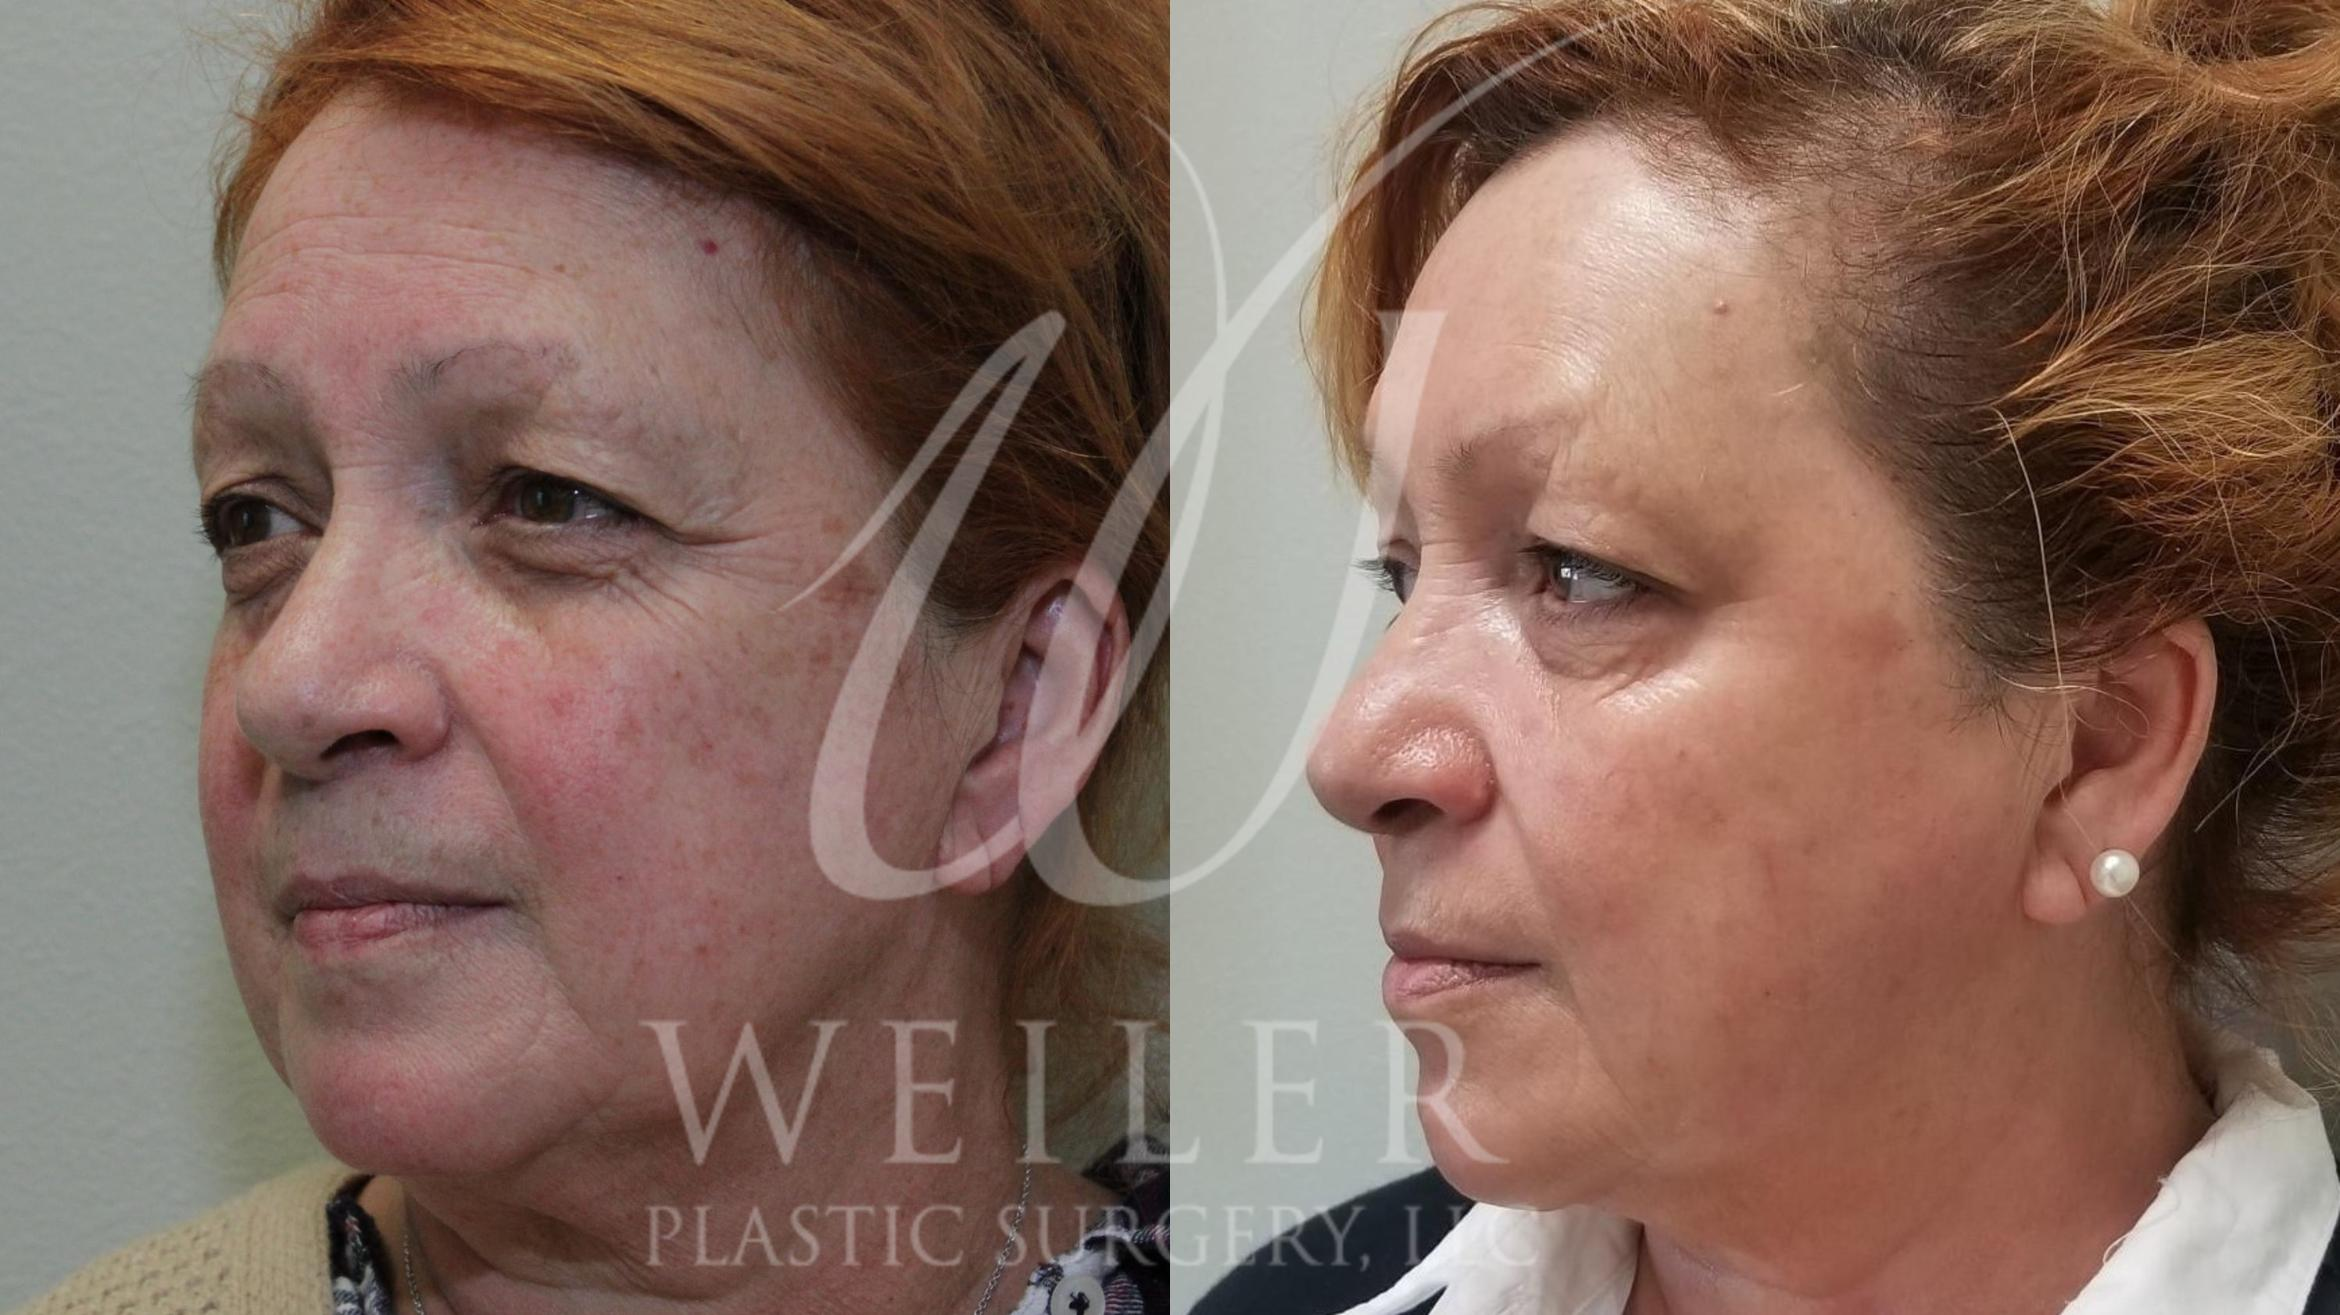 IPL Photorejuvenation Before & After Photo | Baton Rouge, Louisiana | Weiler Plastic Surgery